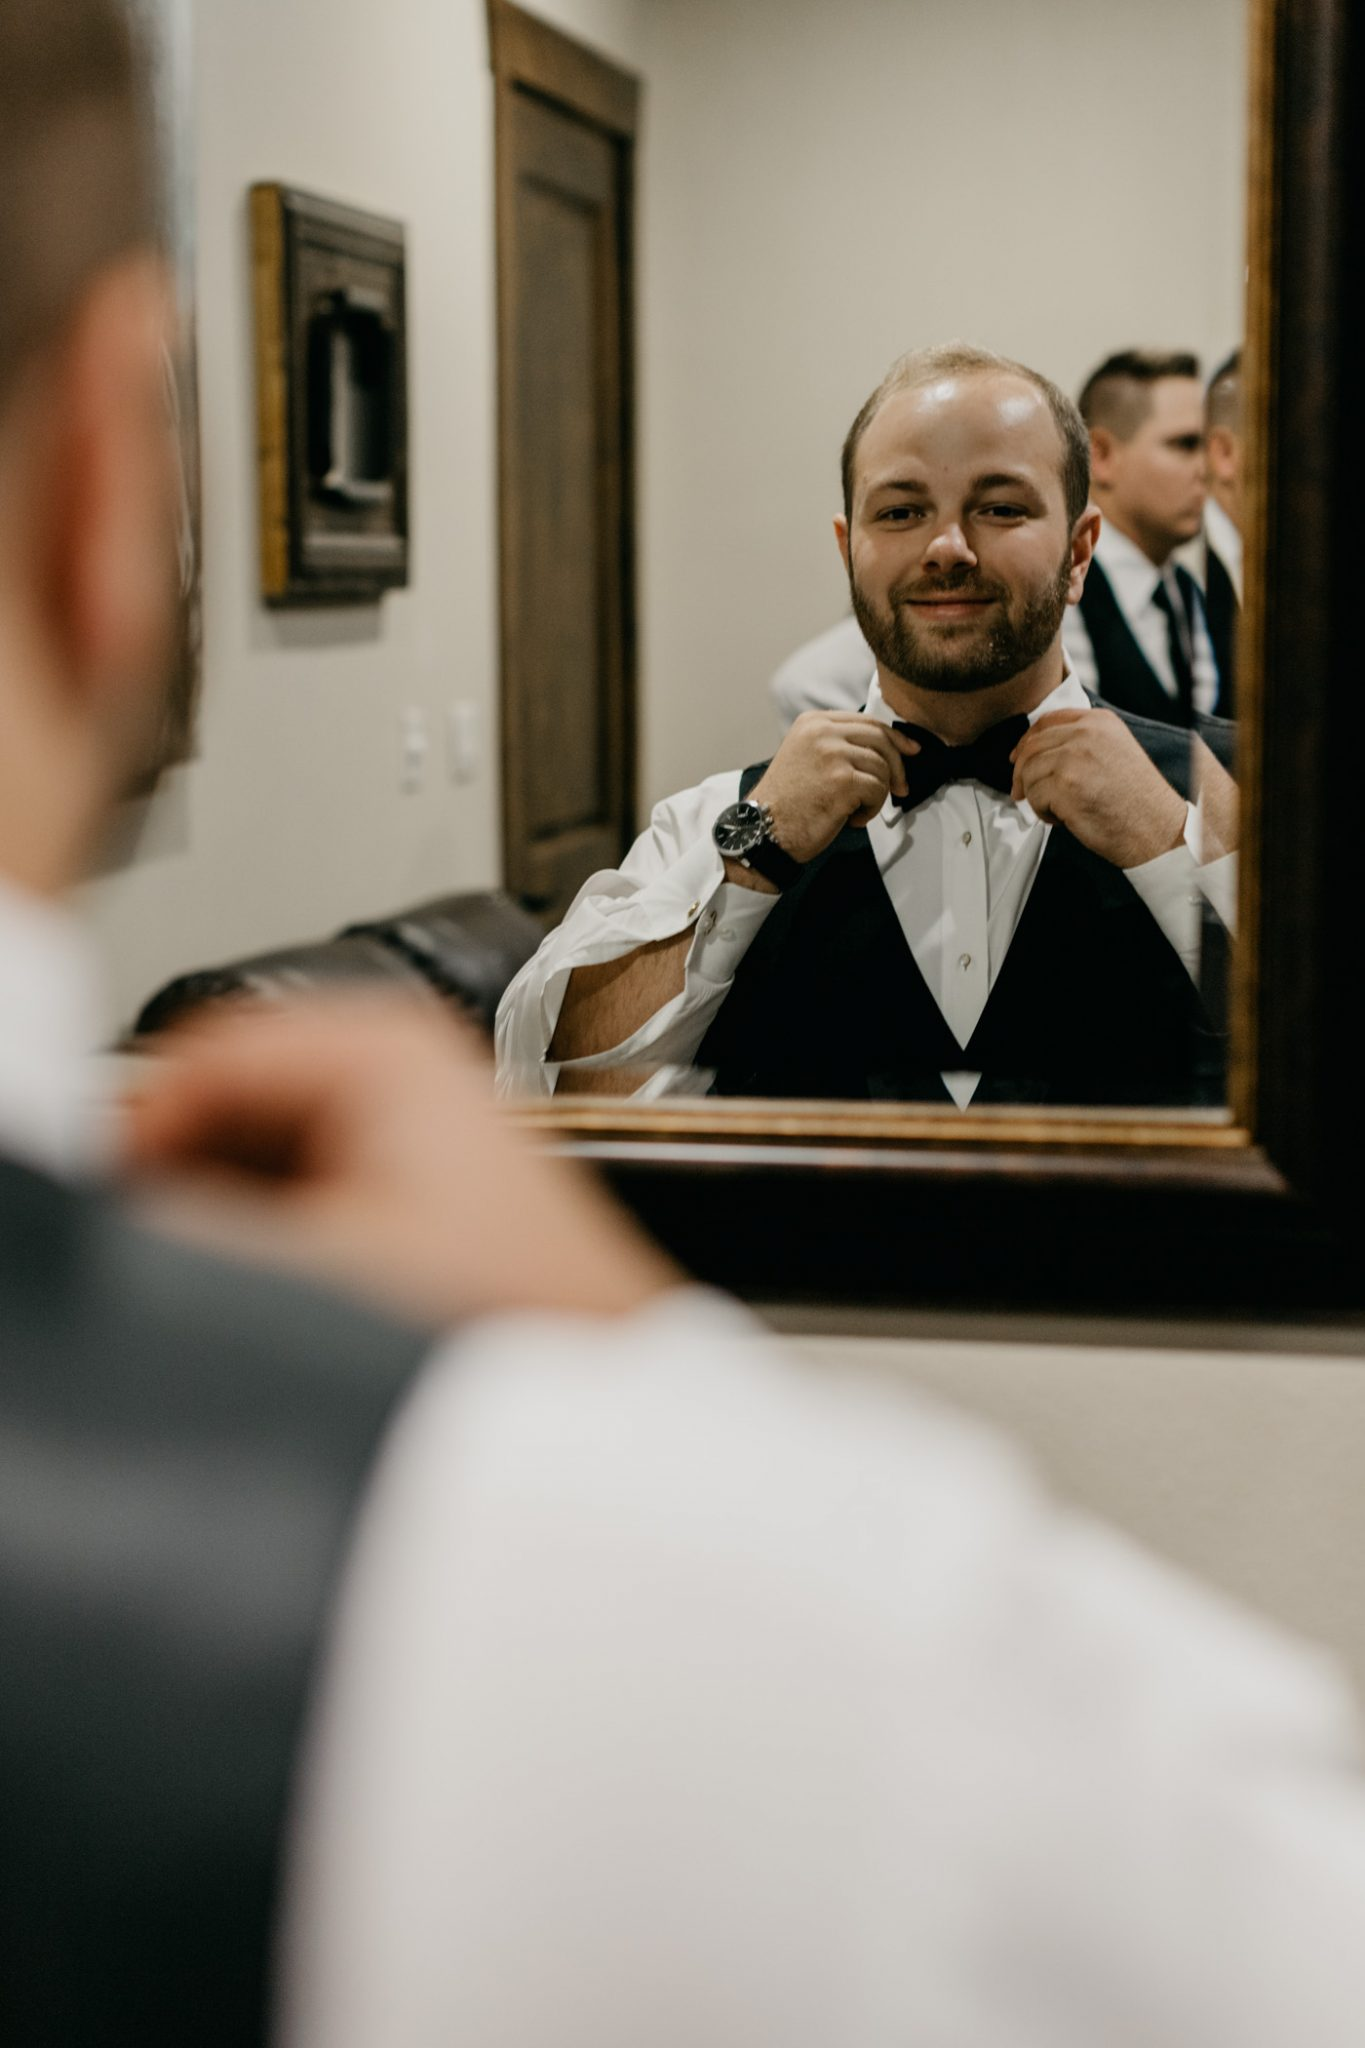 groom putting on bow tie getting ready for his wedding